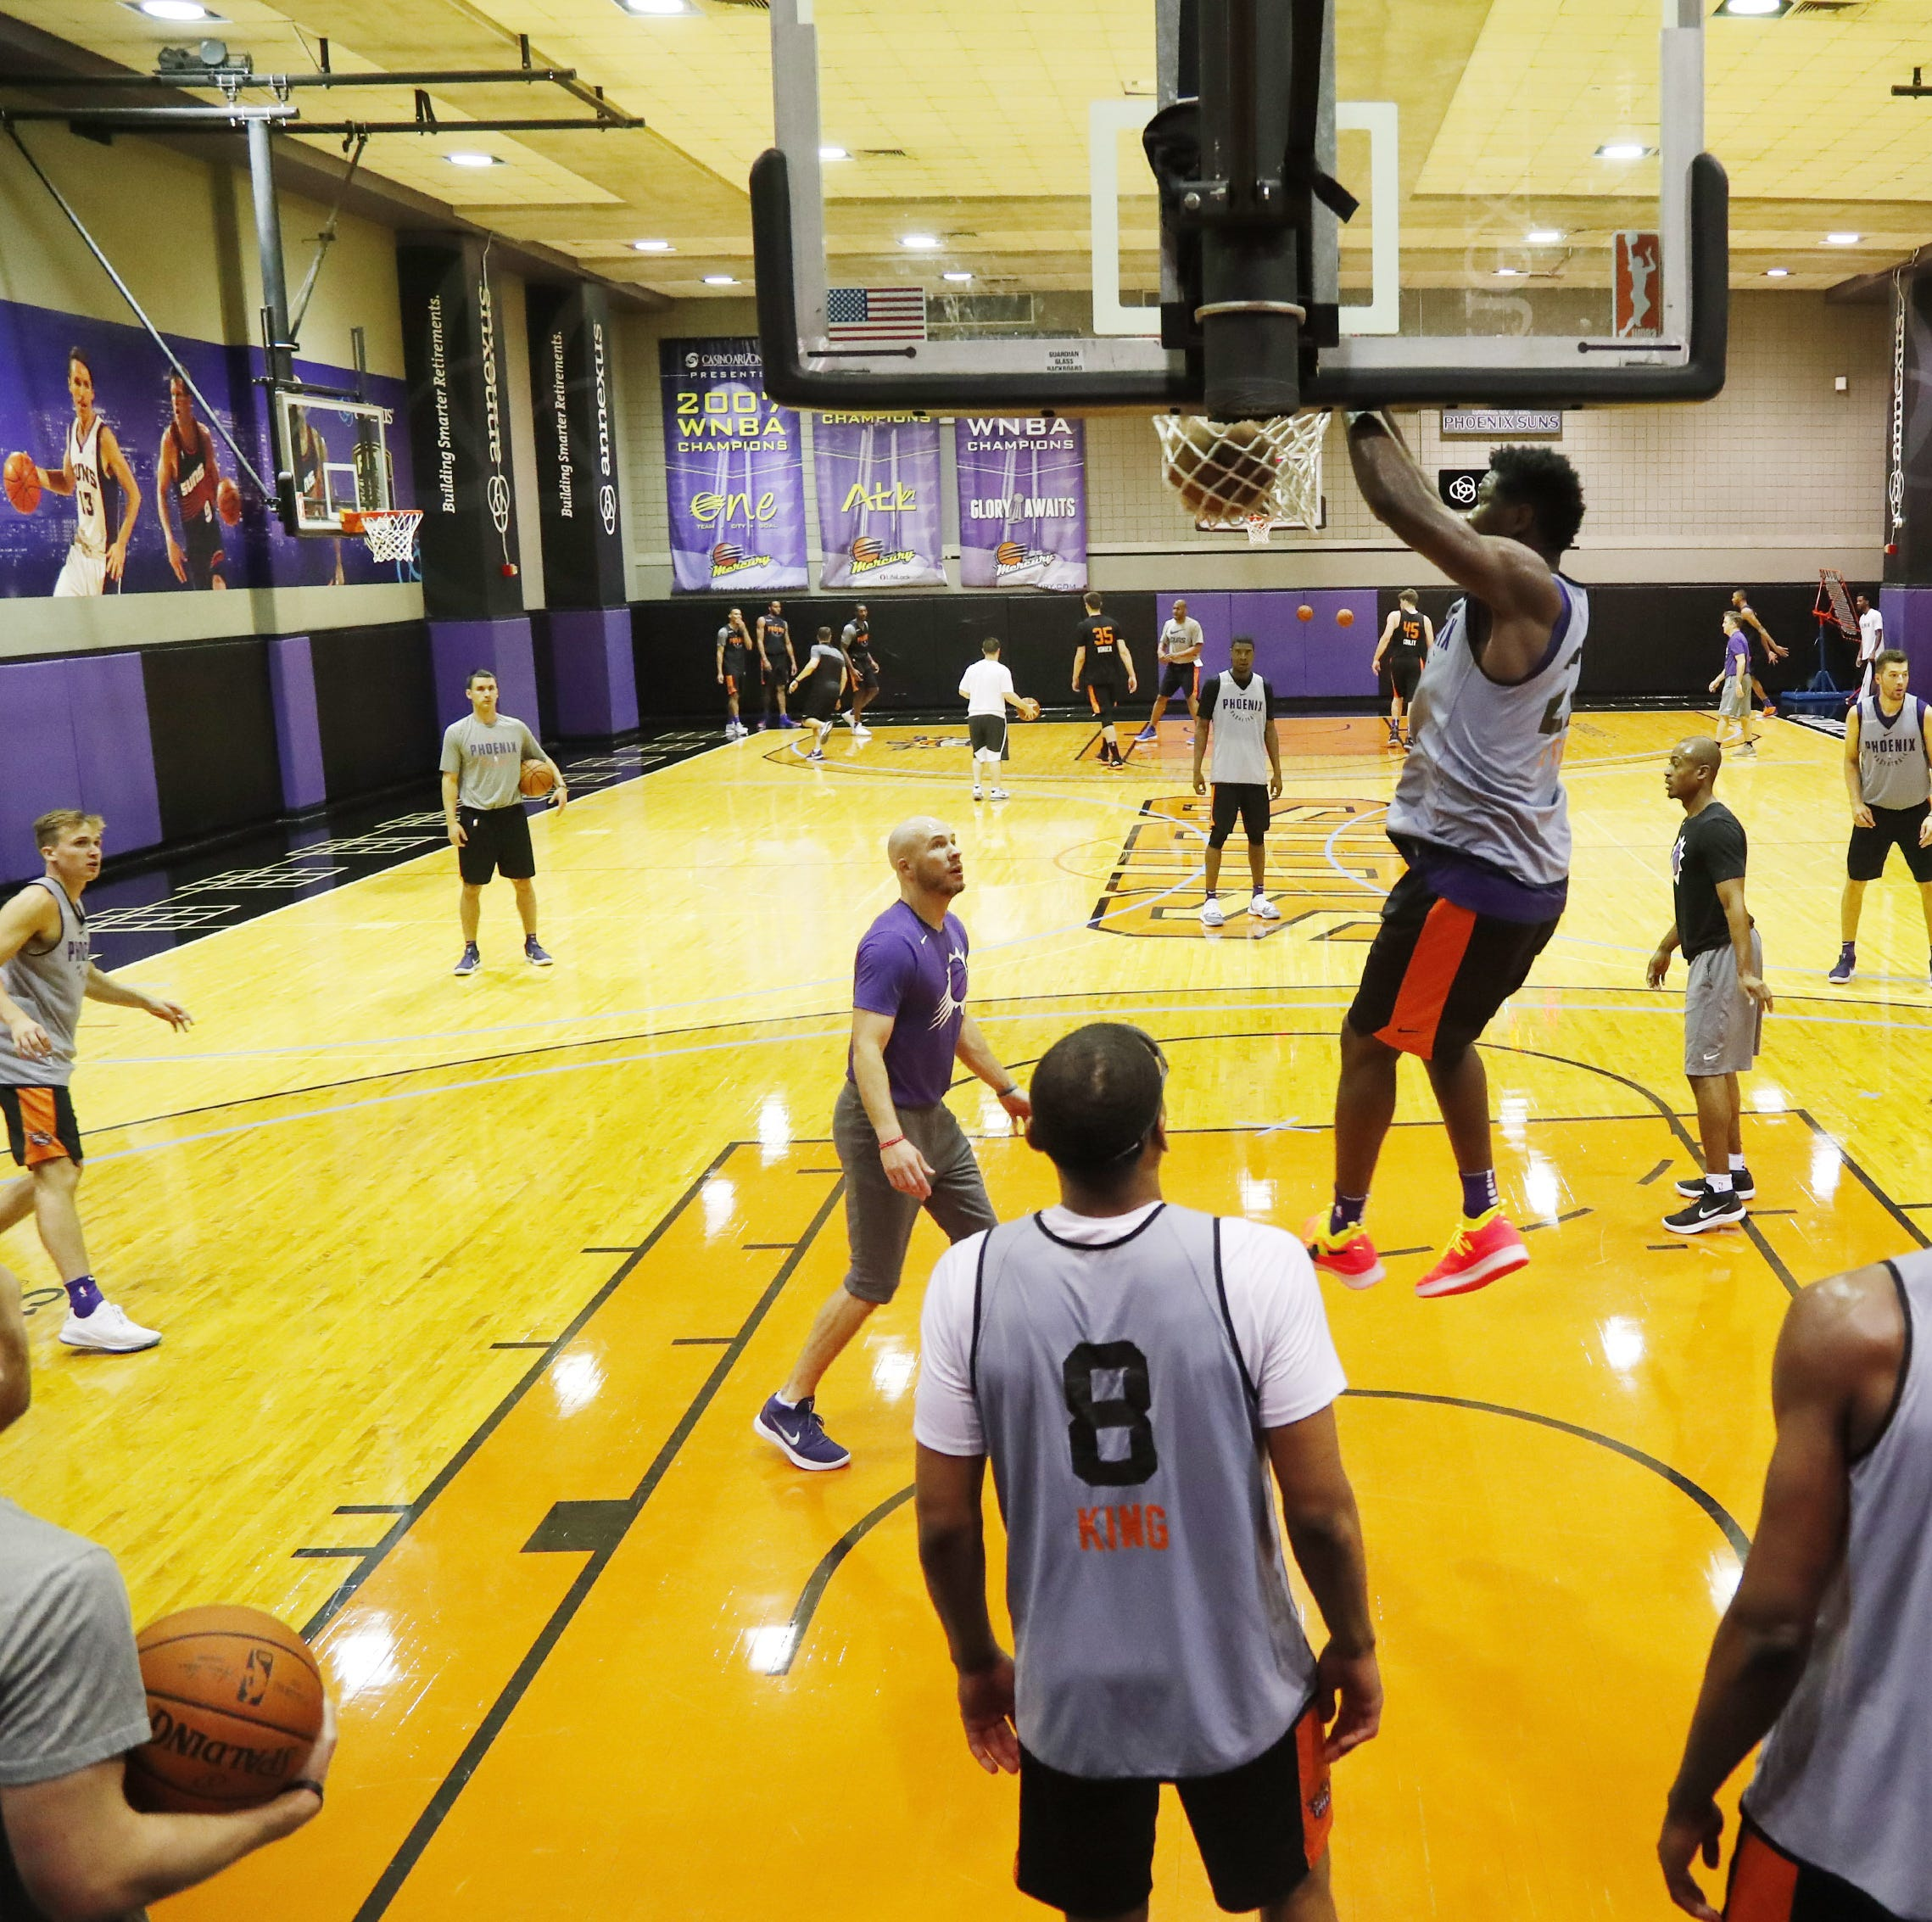 Phoenix Suns set to build practice facility near 44th Street and Camelback Road